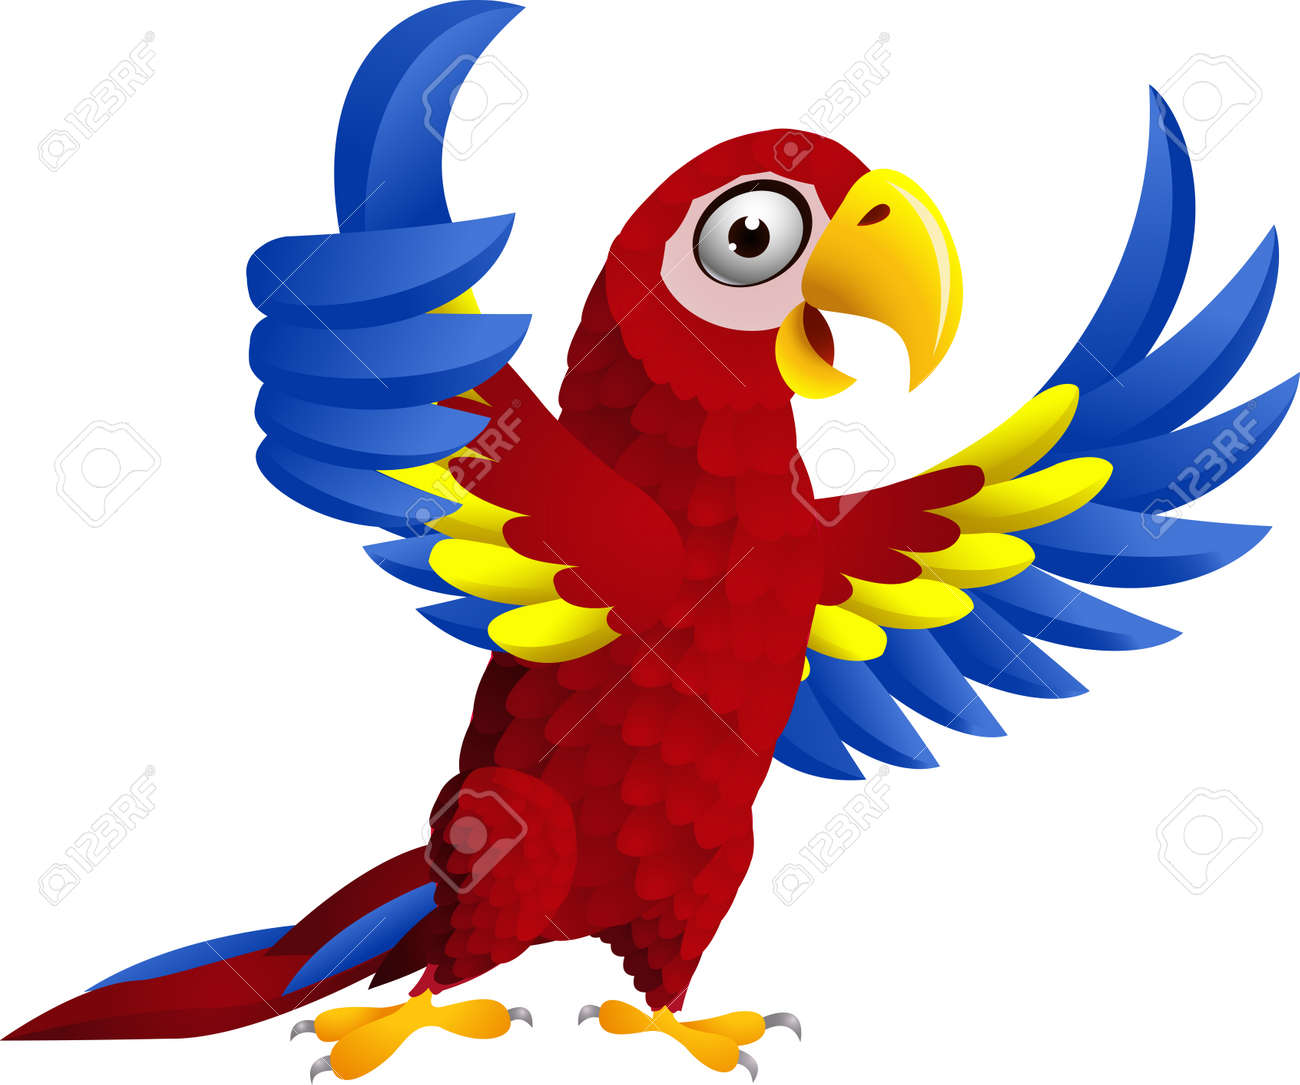 Macaw bird with thumb up - 15234349